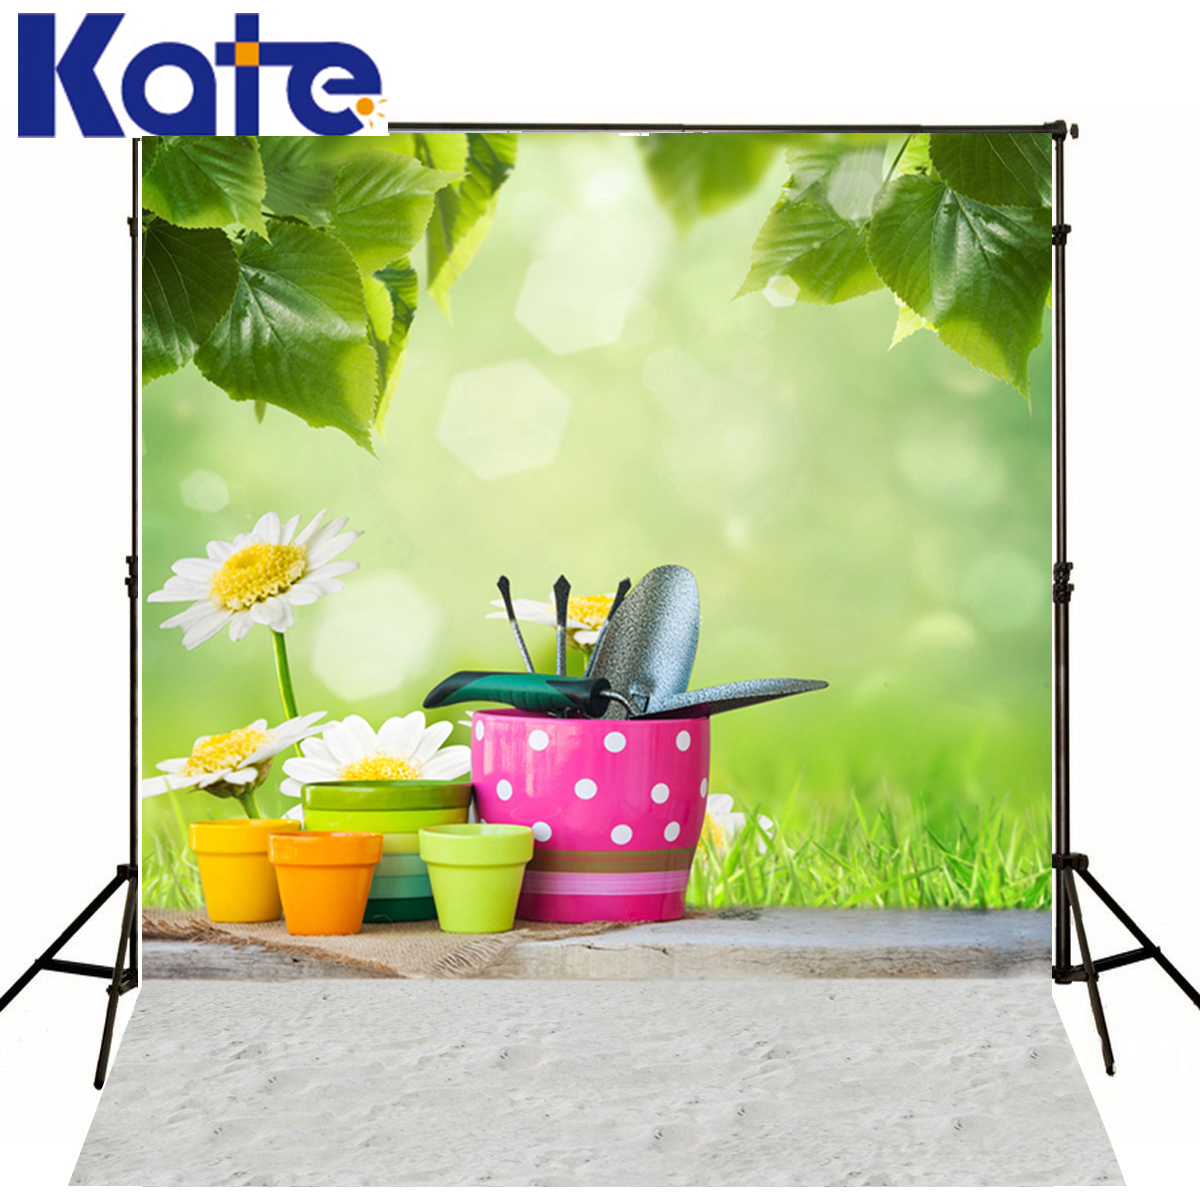 KATE Photo Backdrops White Flowers Green Grass Children Photo Background Flowerpot Pavement Background For Baby Photo Shoot seattle mariners felix hernandez photo photo sport poster